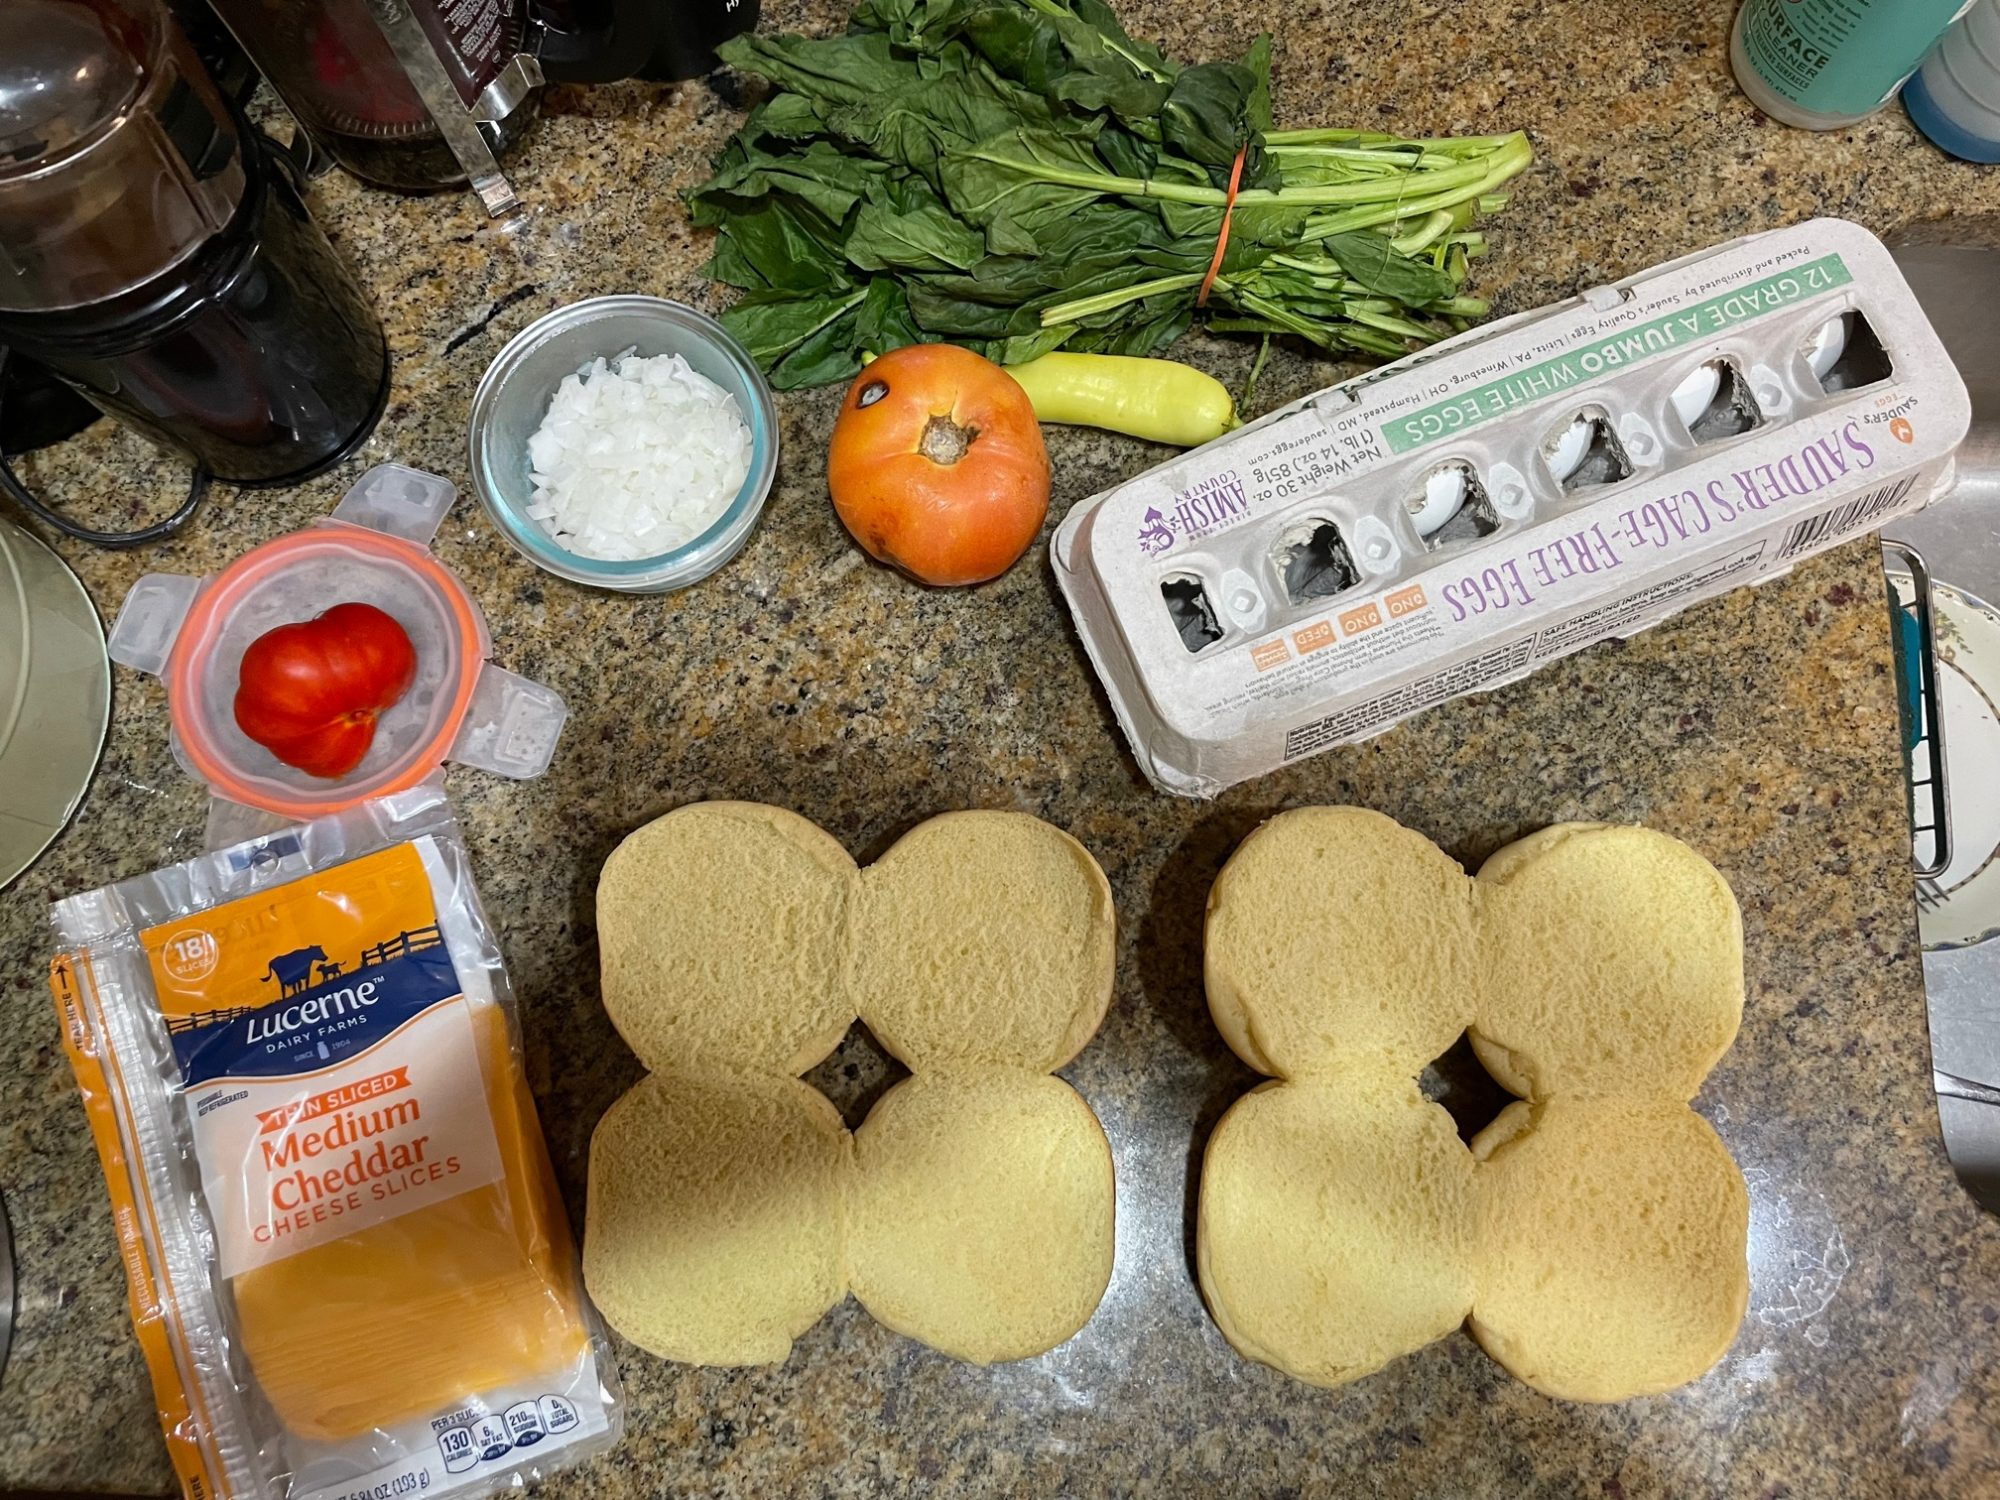 mise en place, setting out the ingredients